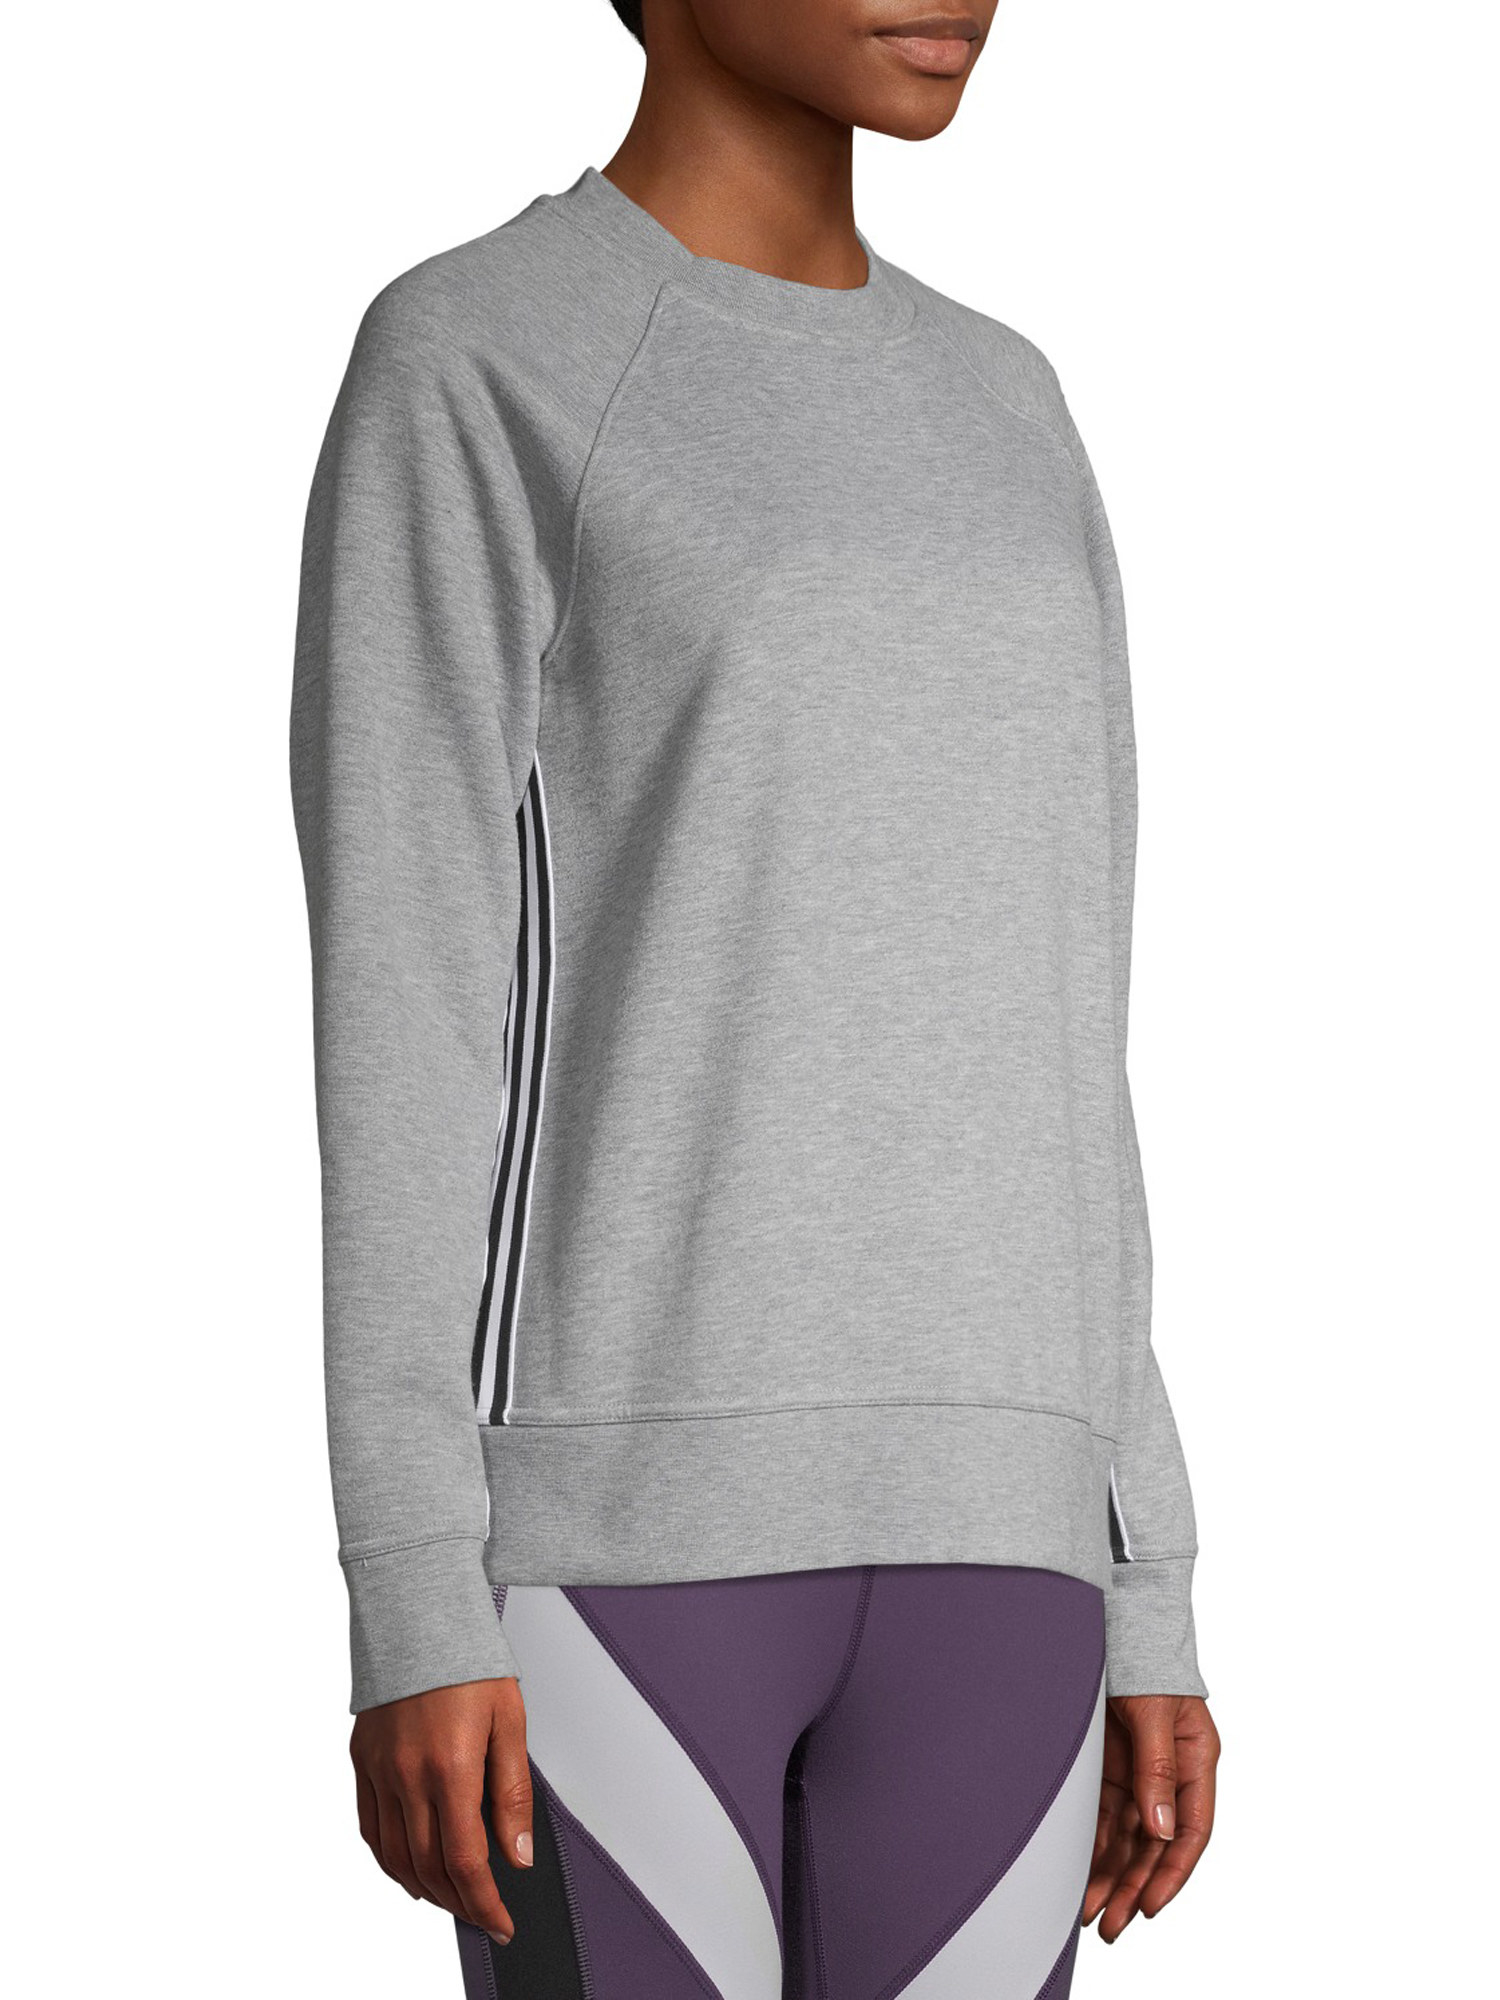 person wearing gray sweatshirt with purple leggings